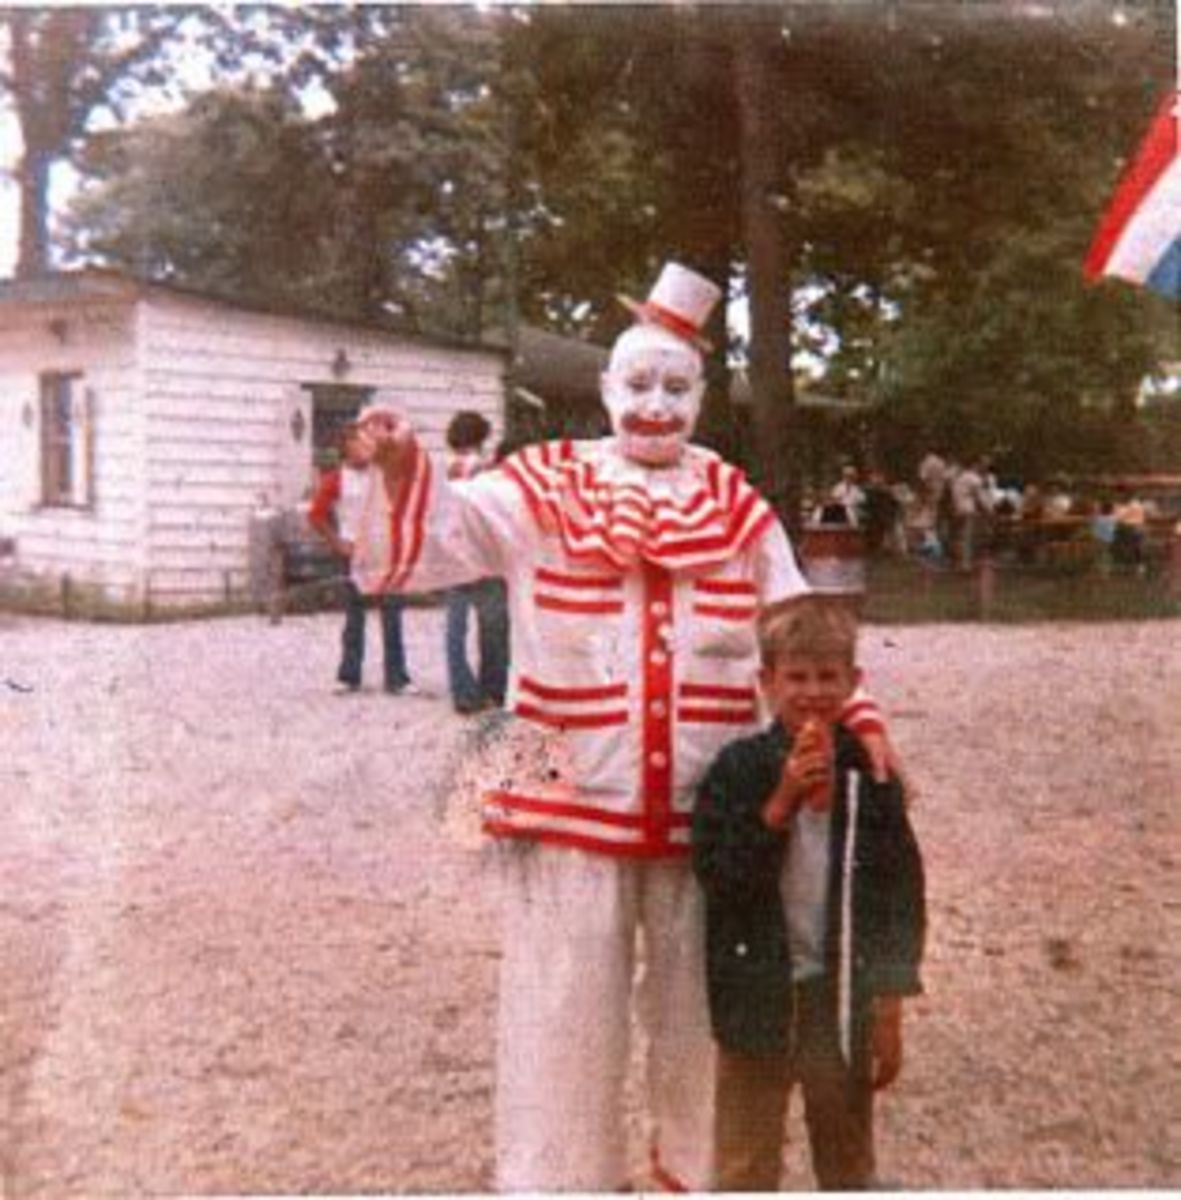 John Wayne Gacy Dressed As Pogo The Clown